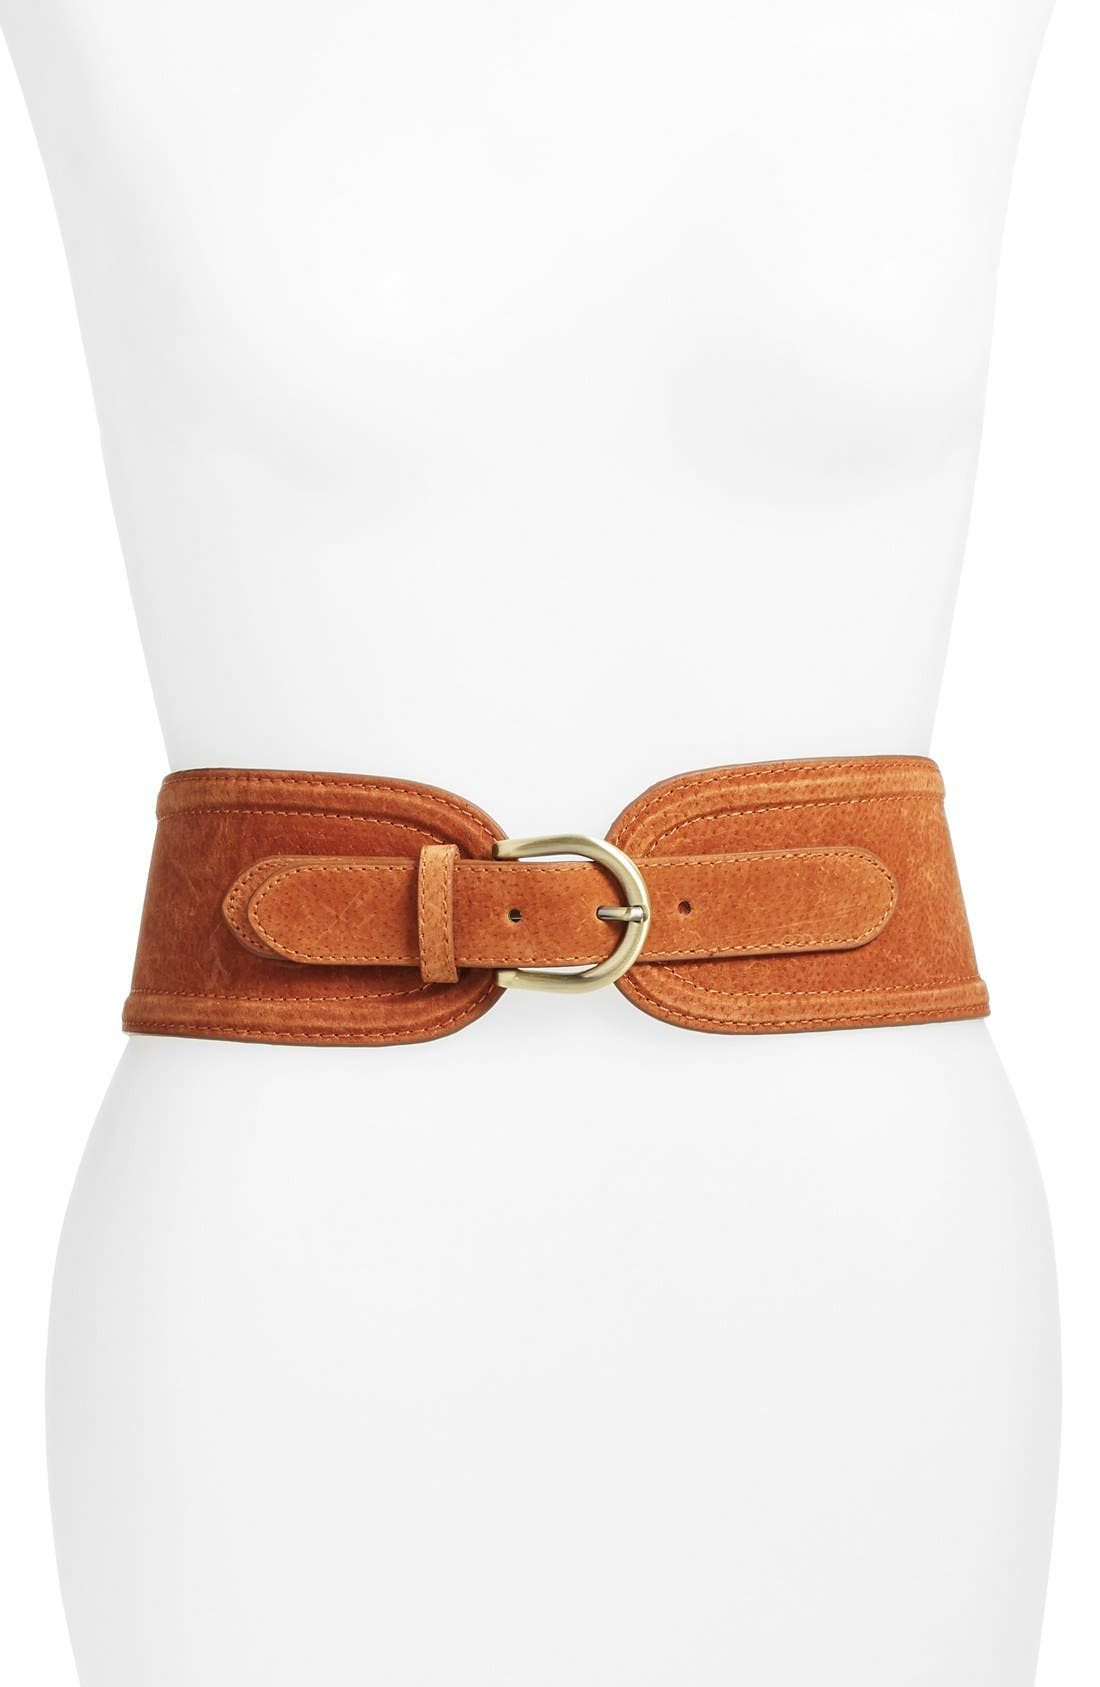 Alternate Image 1 Selected - Elise M. 'Vicky' Suede Belt